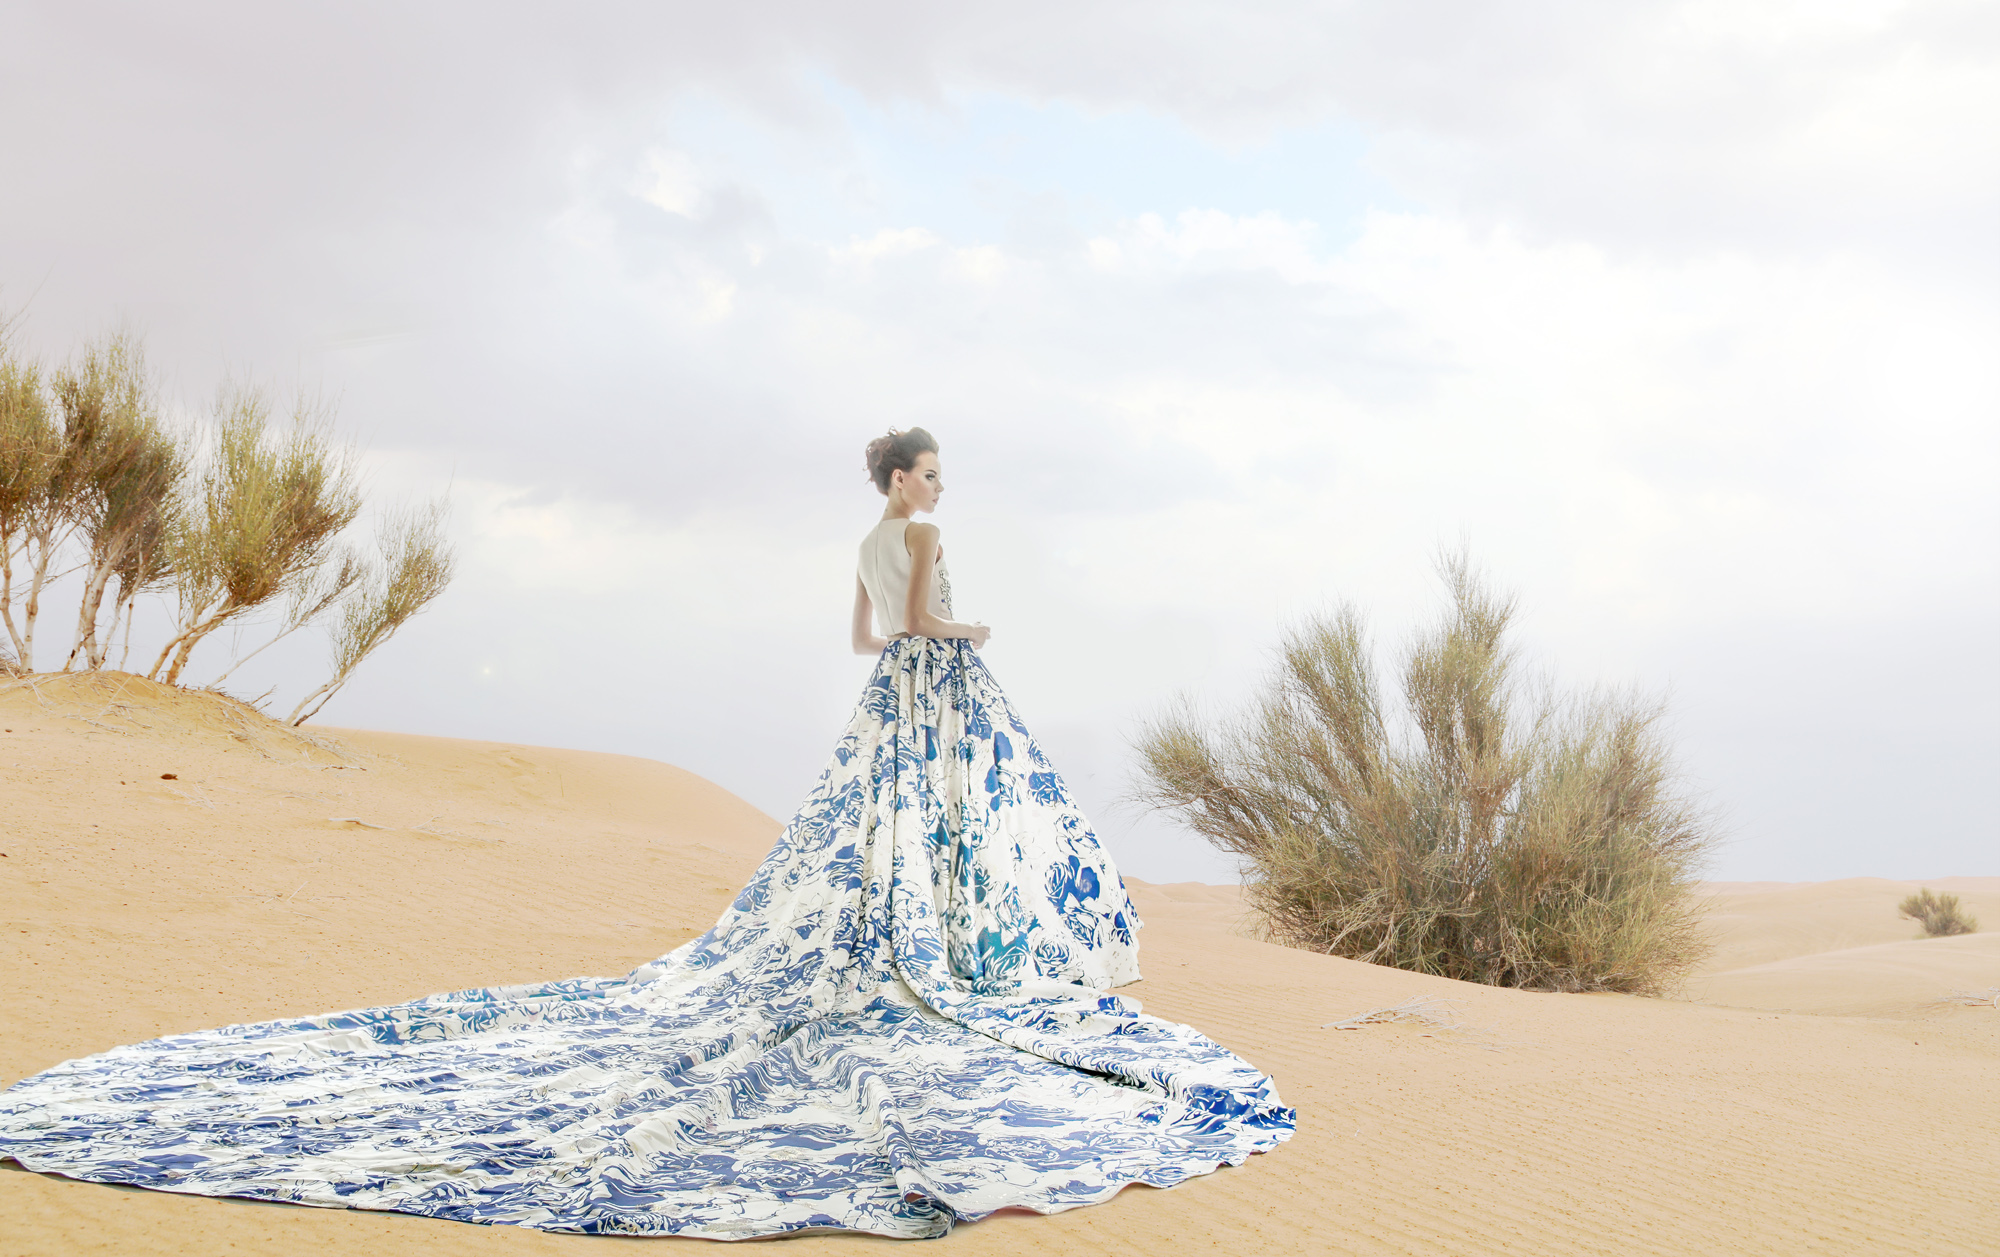 Fashion on the desert